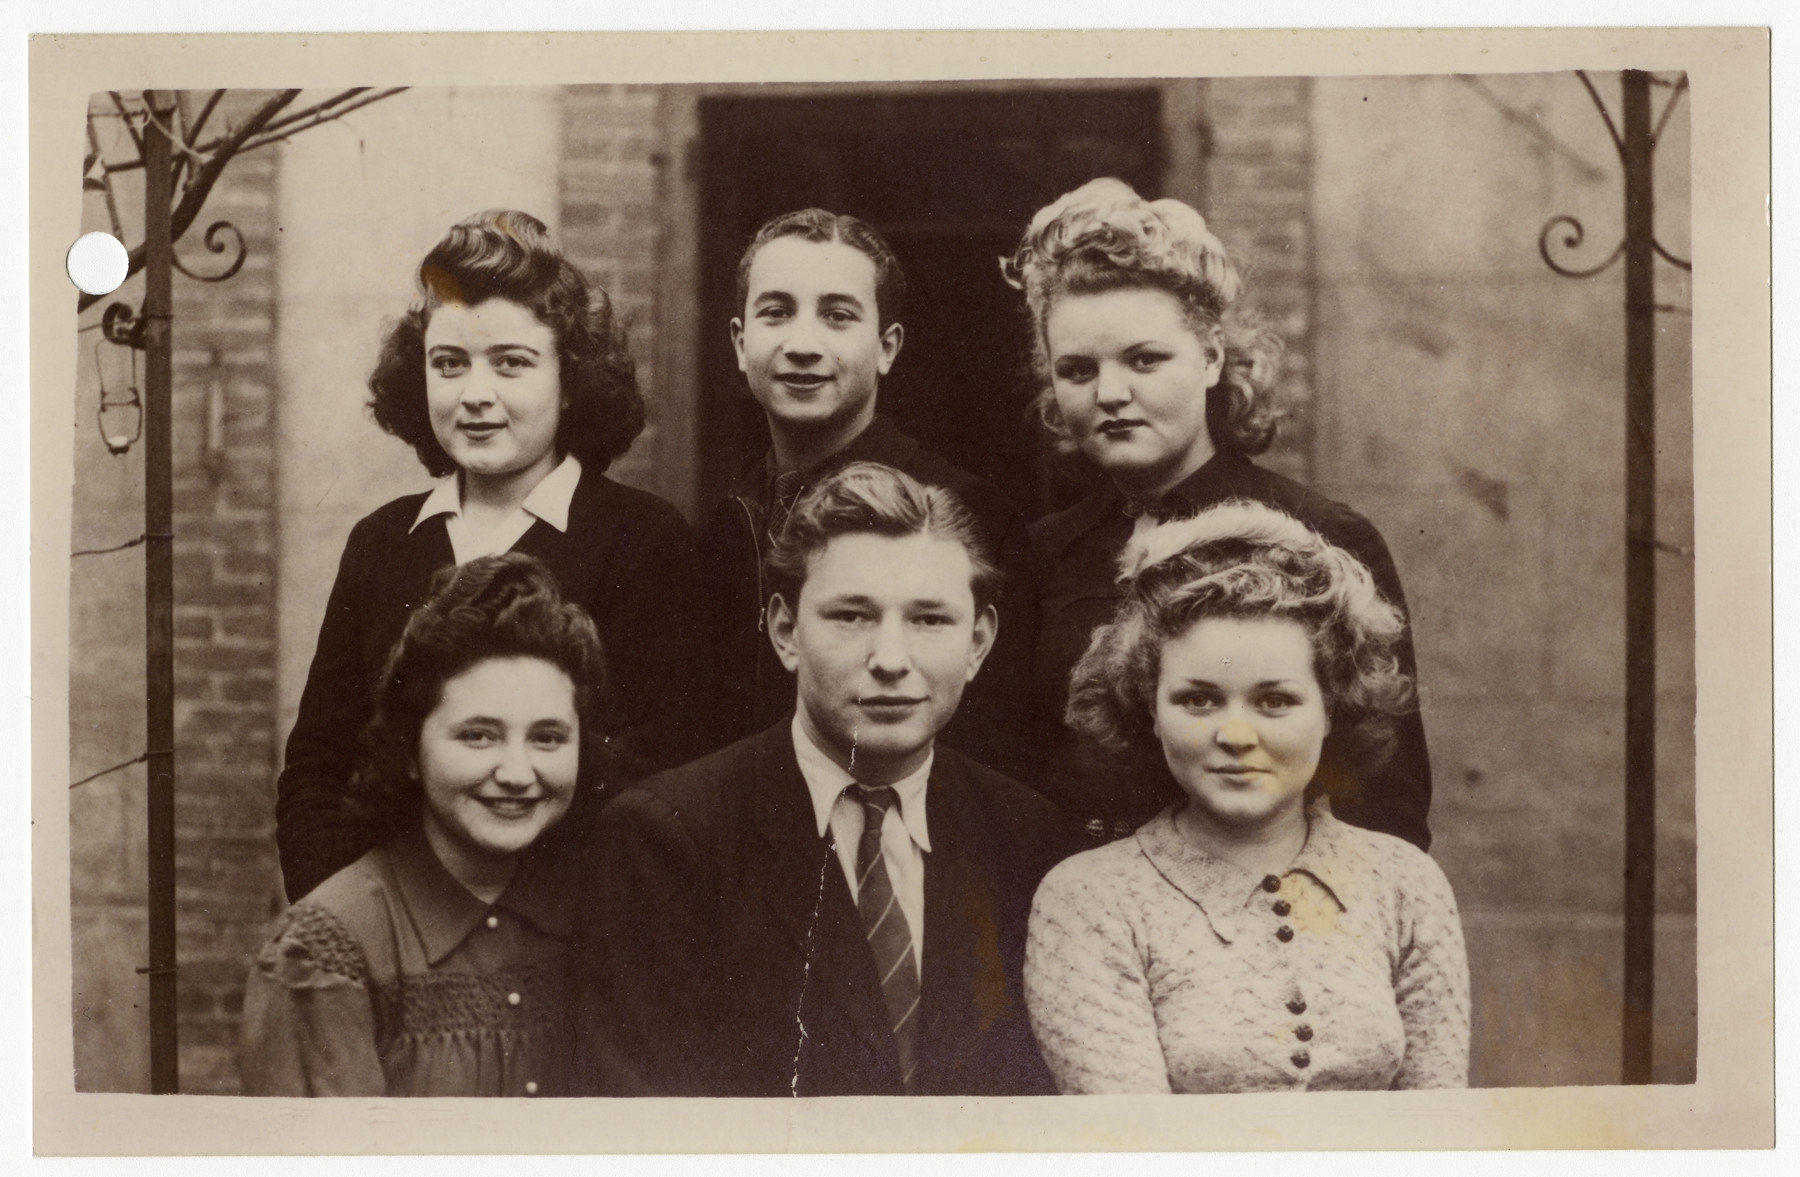 Group portrait of Jewish youth in hiding.  Pictured bottom row from right to left are Francine Ajzensztark, Maurice Rubinsztein and Maurice's cousin Suzanne (who did not survive).  Top row, right to left: Suzanne Ajzensztark. Henry (did not survive) and Annette (a Christian girl whose father helped them get false papers and who hid Maurice)  After the war Annette and Maurice married.